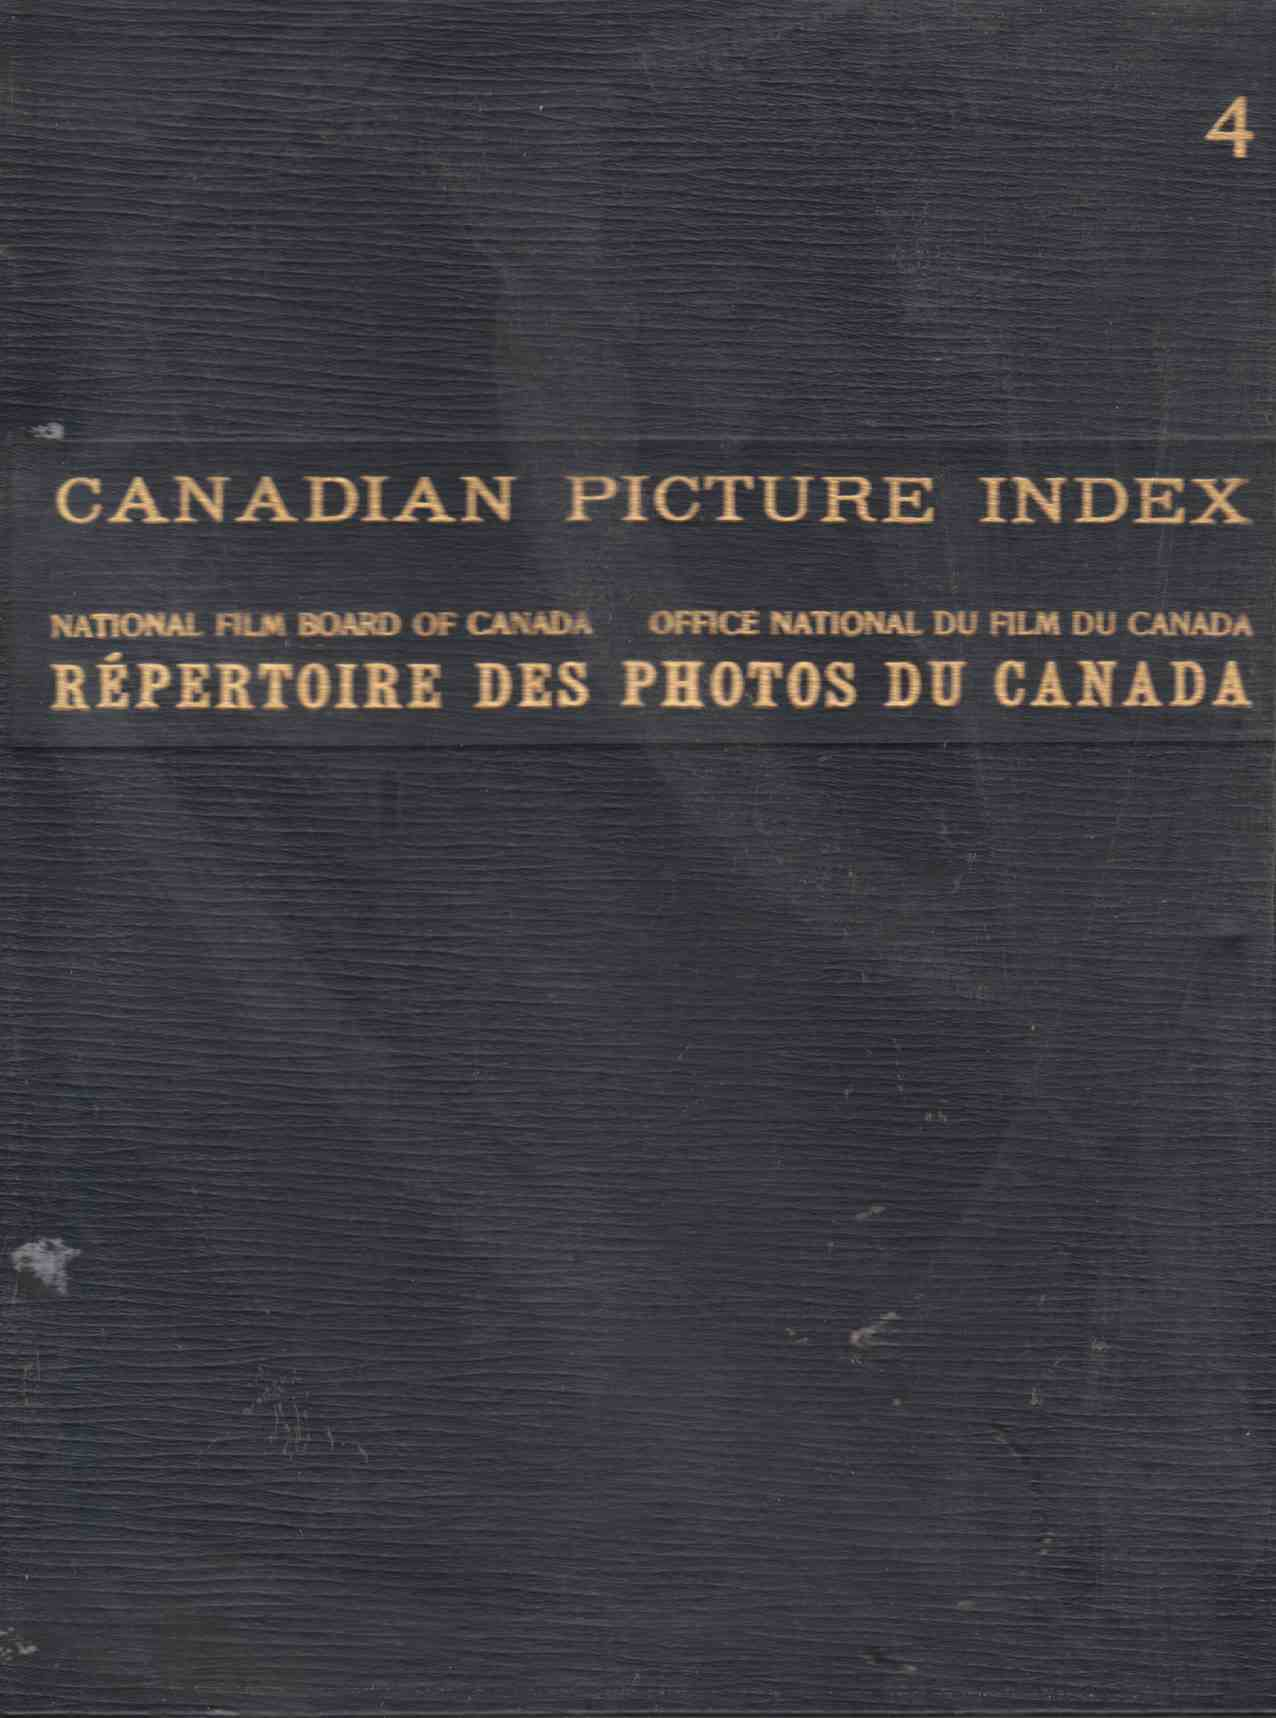 Image for Canadian Picture Index Volume 4 Repertoire Des Photos Du Canada